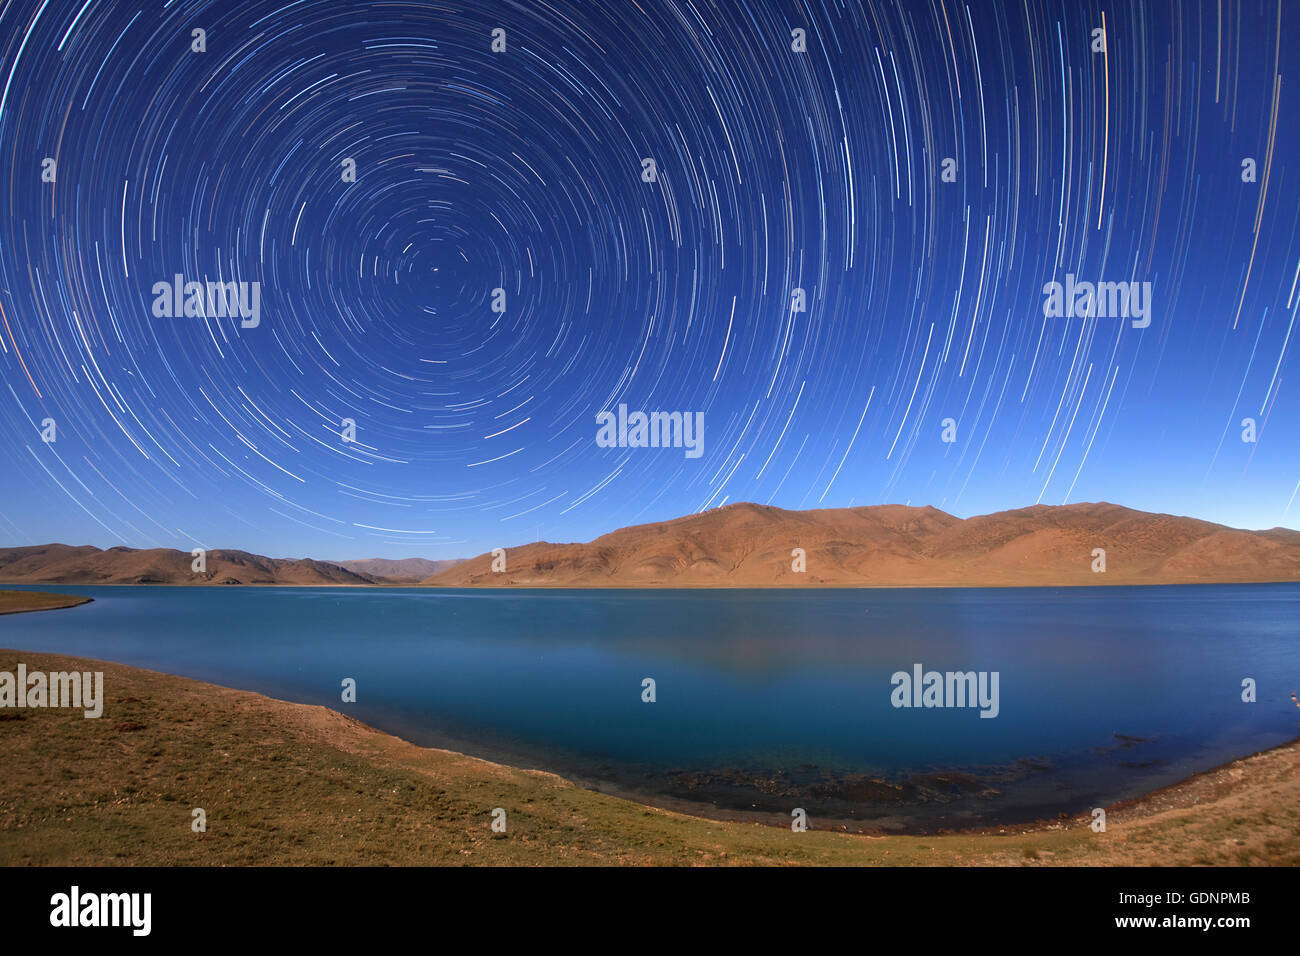 Star trails around the northern celestial pole over Yamdrok Lake, Tibet, China. - Stock Image